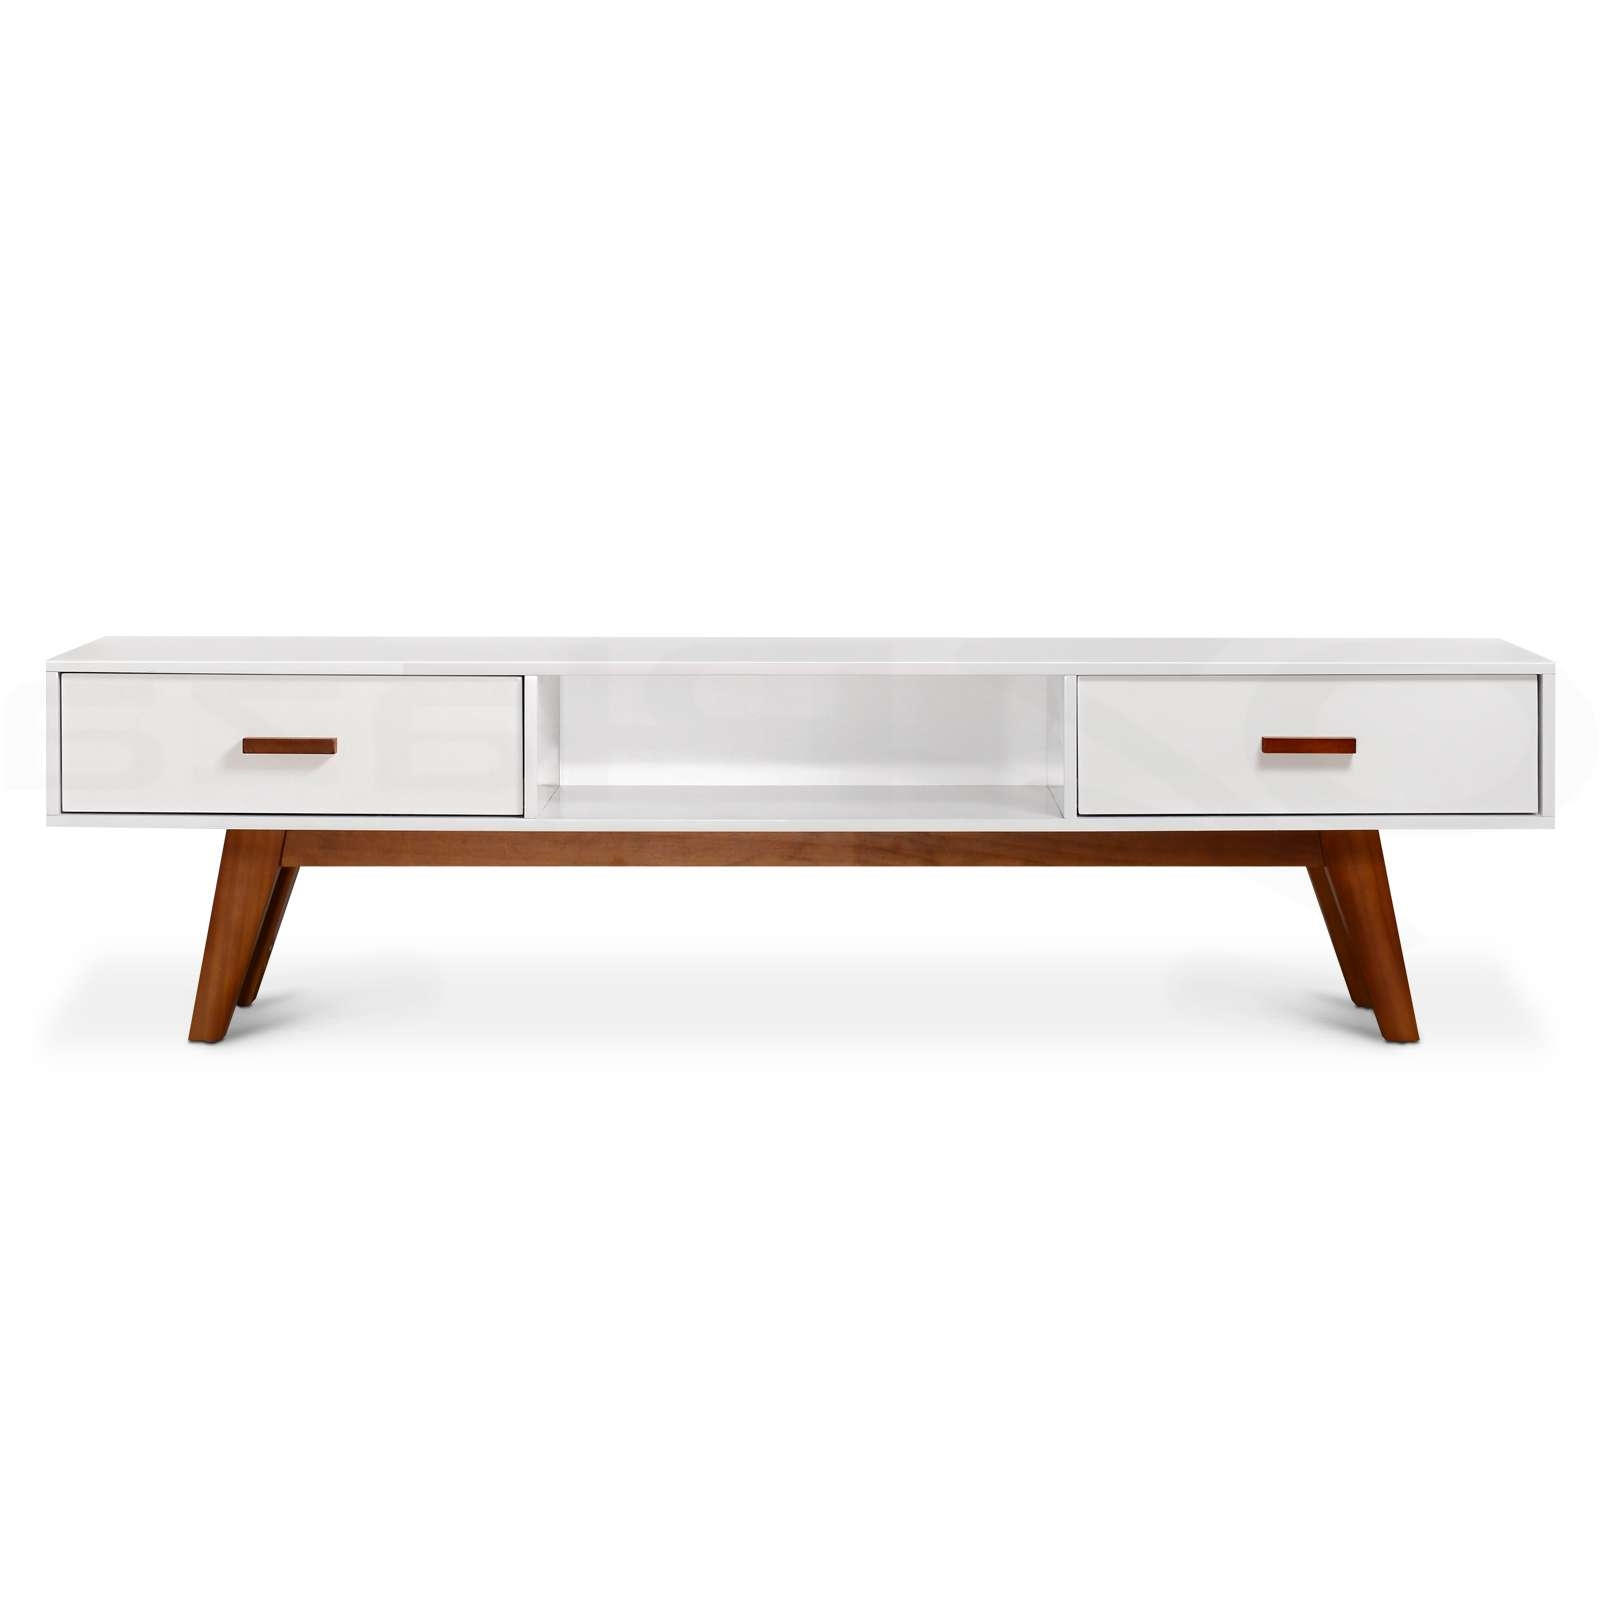 Tv Stand Cabinet Scandinavian Retro Lowline Furniture With Regard To Scandinavian Design Tv Cabinets (View 20 of 20)